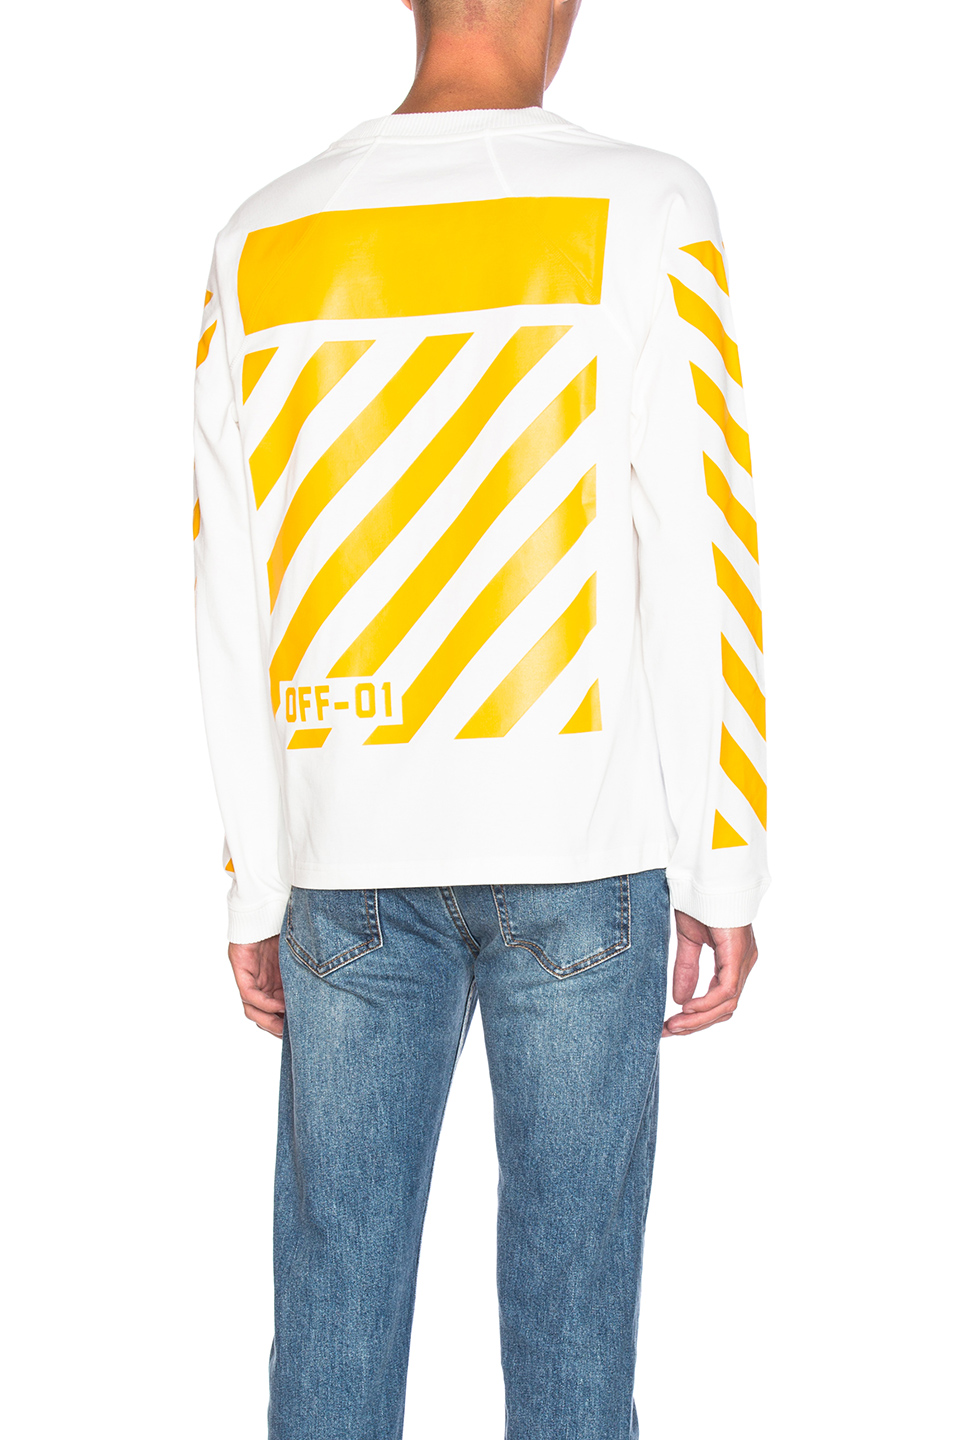 Moncler x Off White Long Sleeve Tee in White